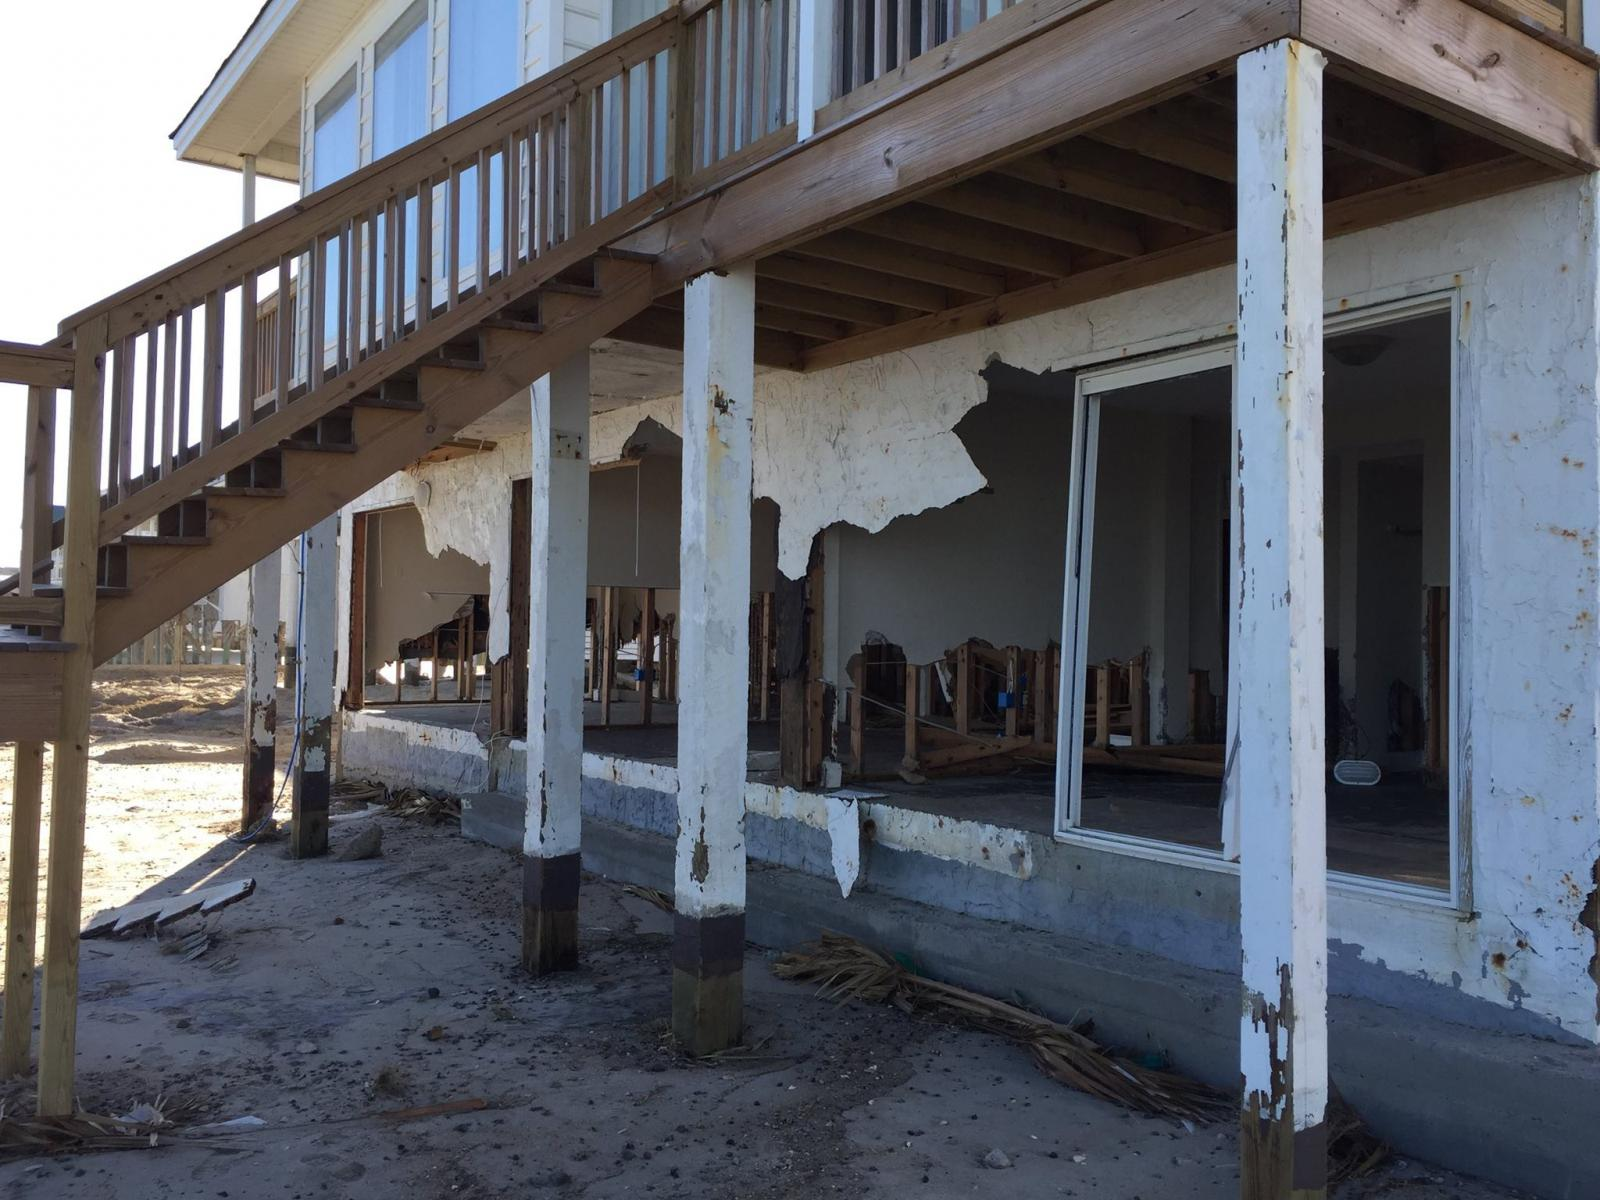 Hurricane Matthew's storm surge heavily damaged the first floor of this home on South Waccamaw Drive in Murrells Inlet, SC, and caused significant beach erosion.  Note how much sand was eroded from around the posts supporting the balcony and stairs.